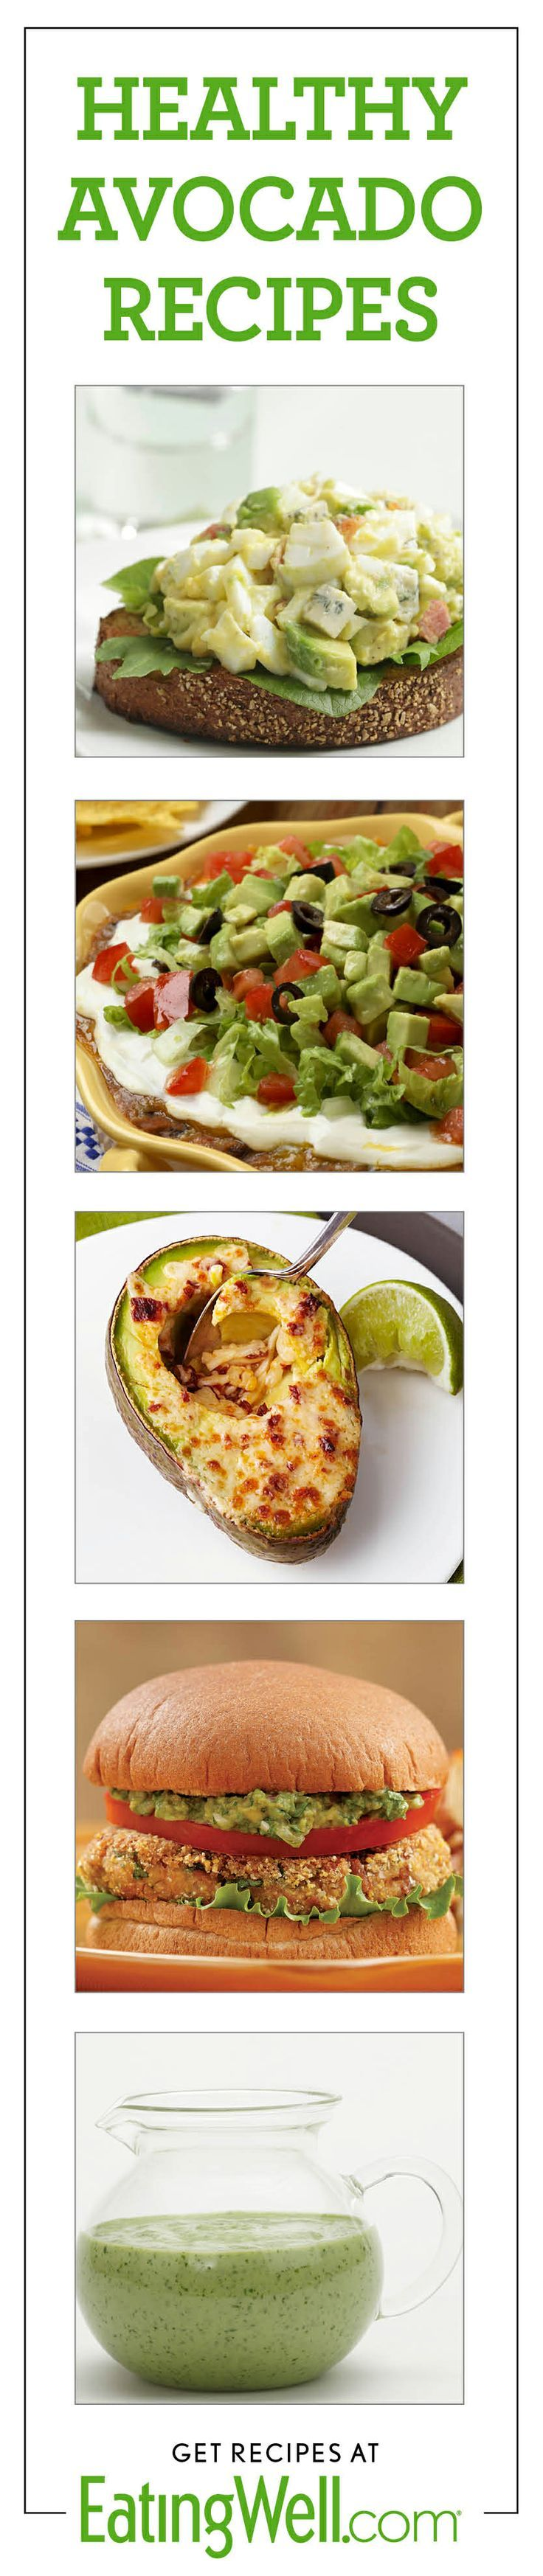 Dozens of healthy avocado recipes-- guacamole, sandwiches, dressings, salads, soups and more